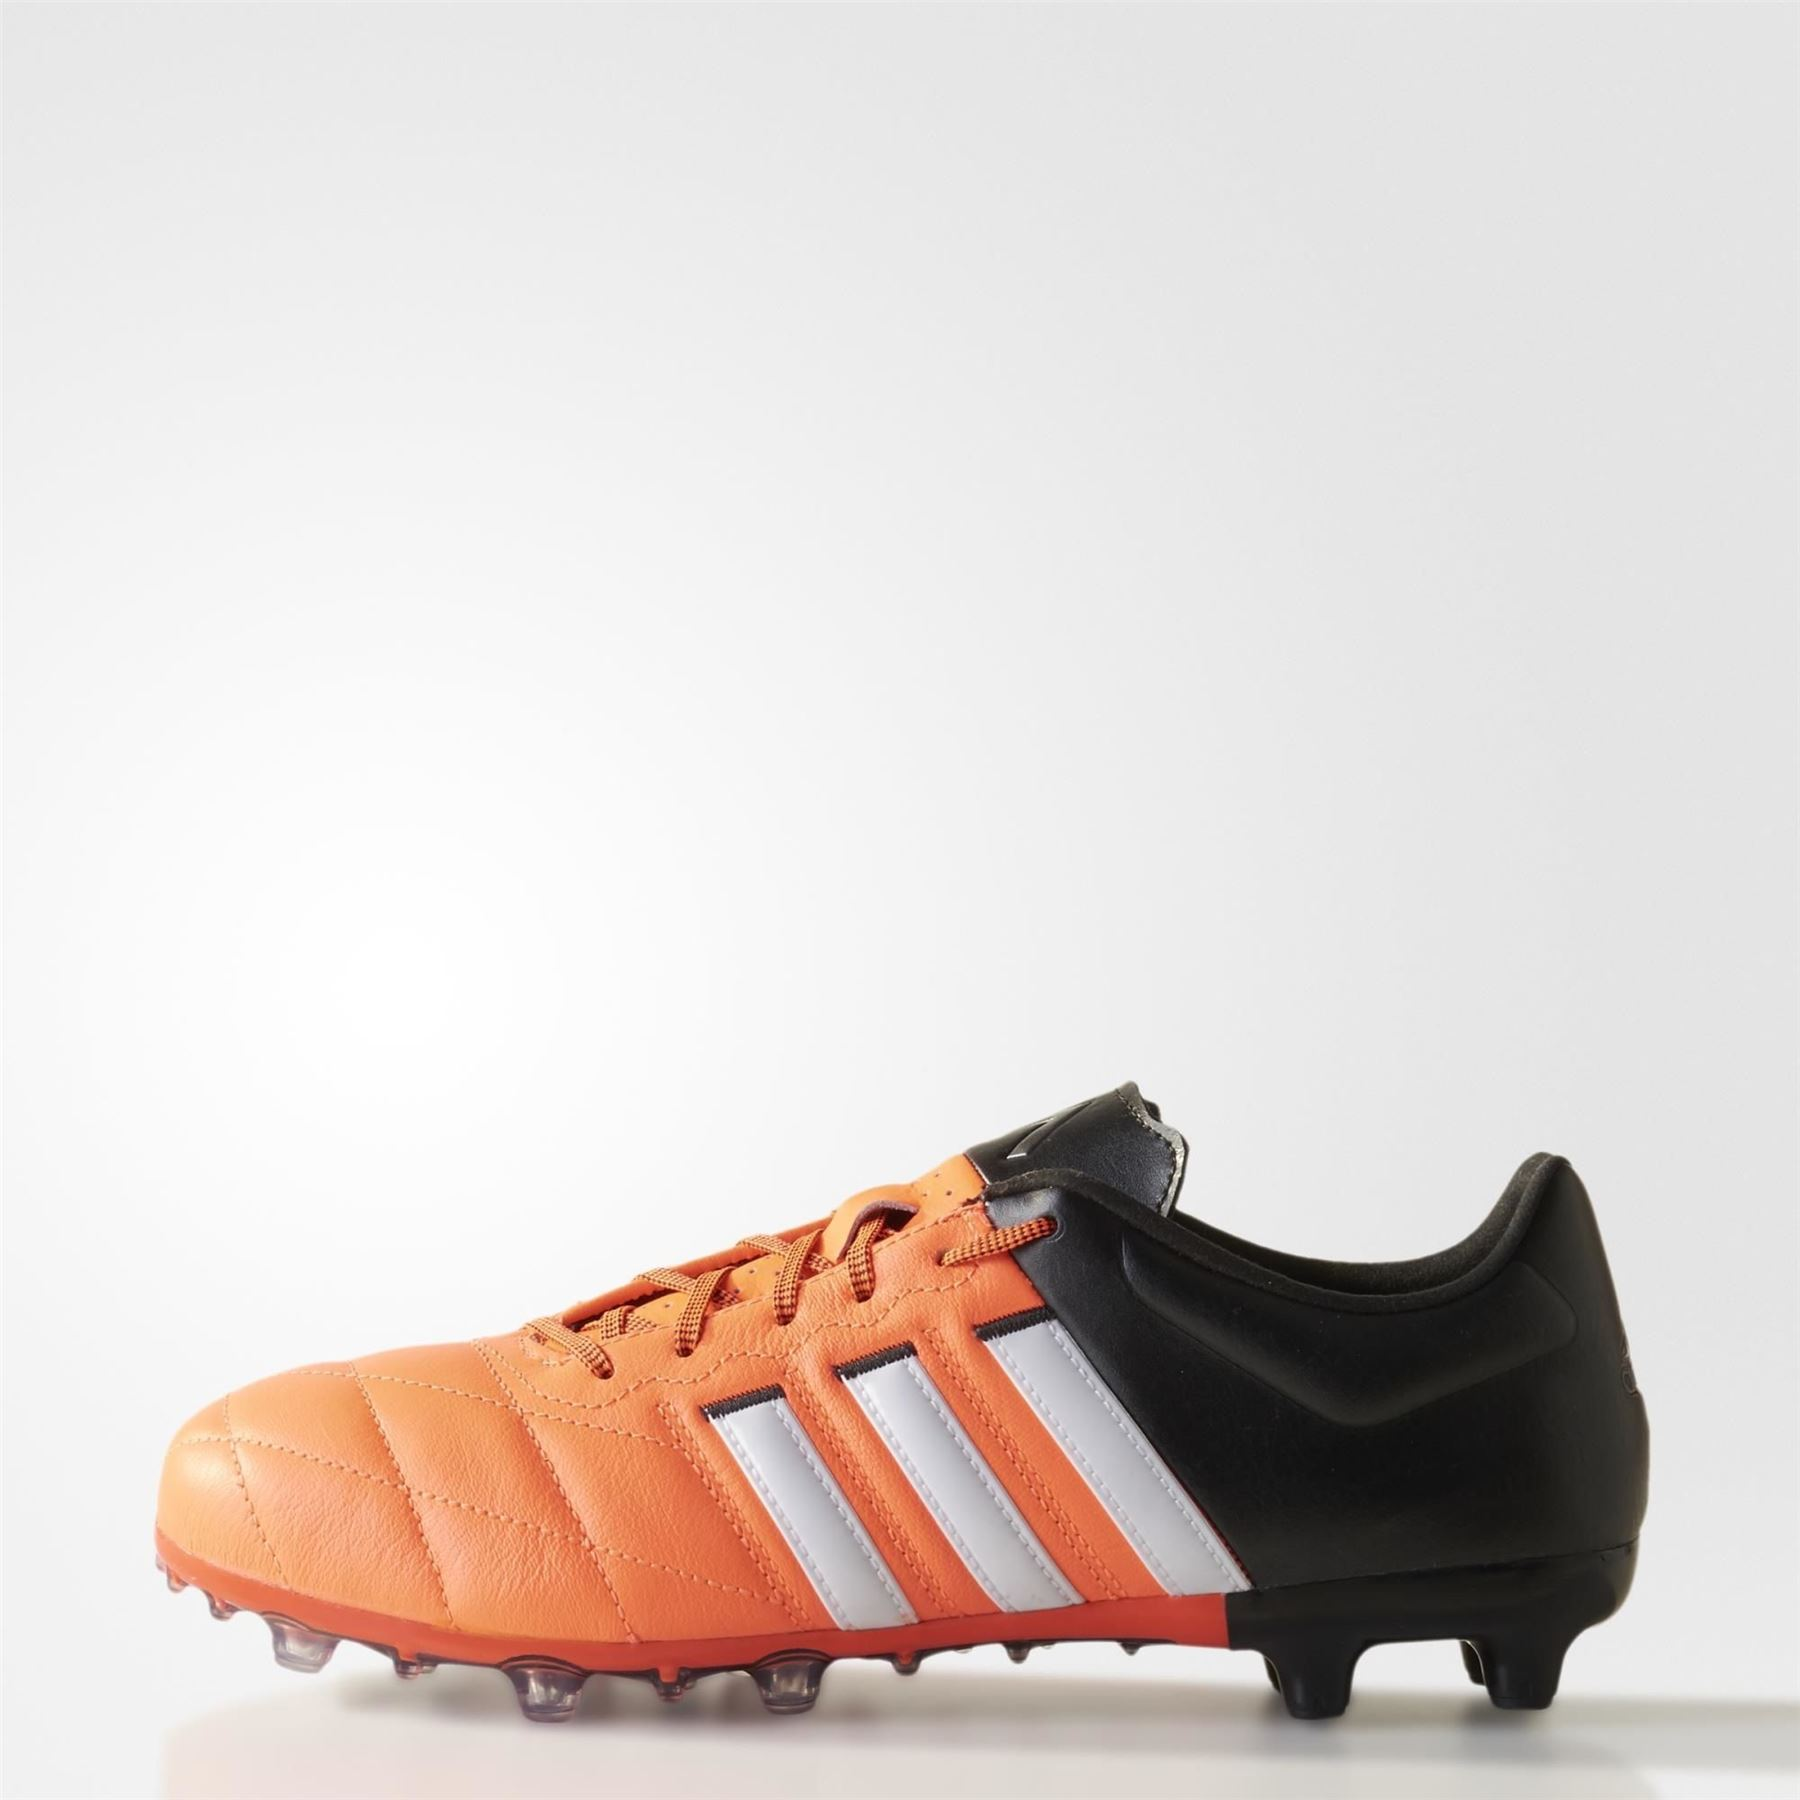 49fbf3b5412 adidas ACE 15.2 FG AG FOOTBALL BOOTS BLACK ORANGE SOCCER 5 A SIDE 4G ...